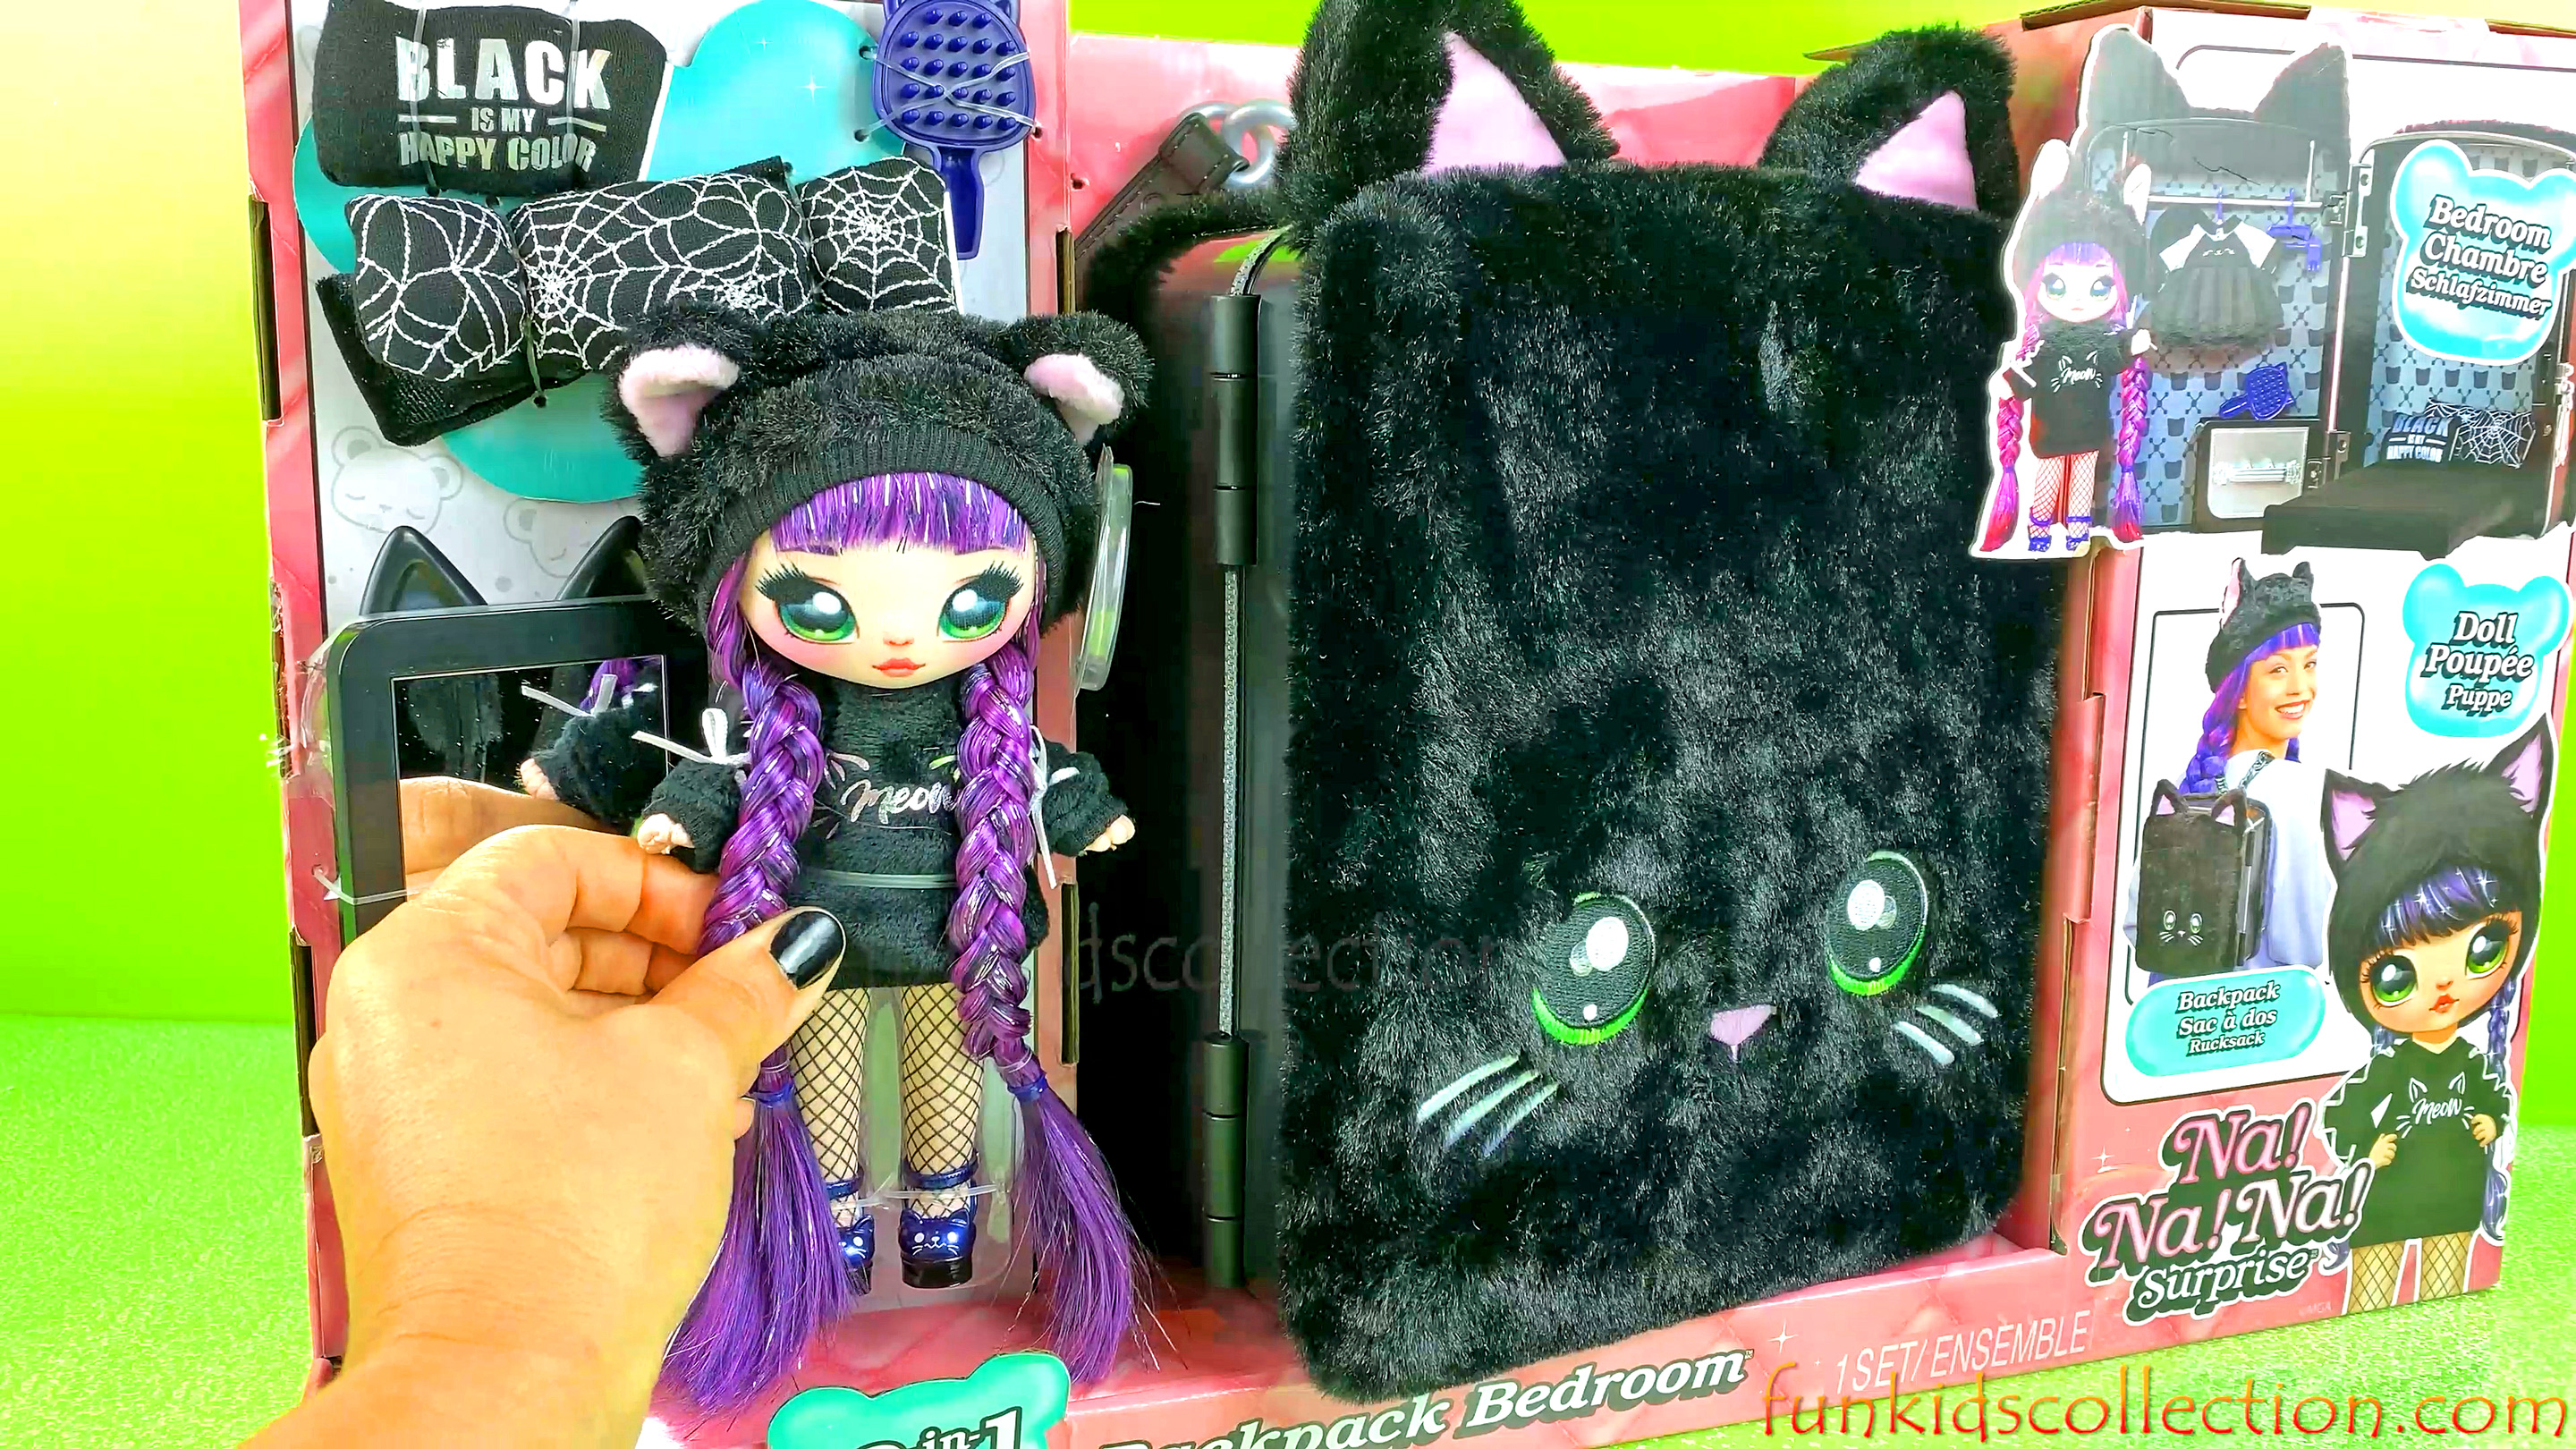 Na Na Na Surprise Doll Black is my Happy Color | Na Na Na Surprise Doll Backpack Bedroom Black